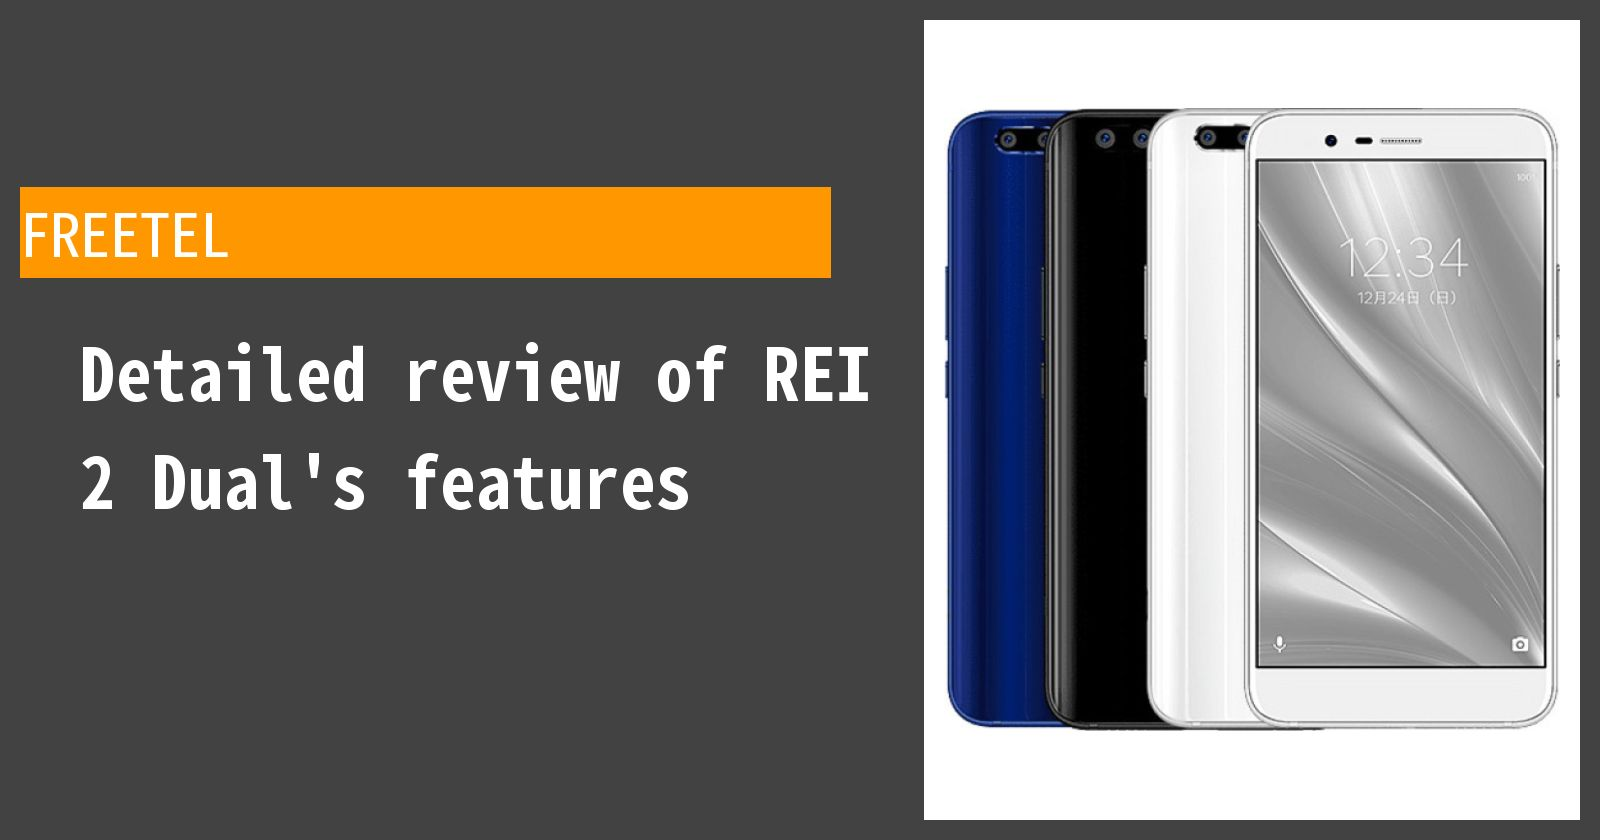 Detailed review of FREETEL REI 2 Dual's features